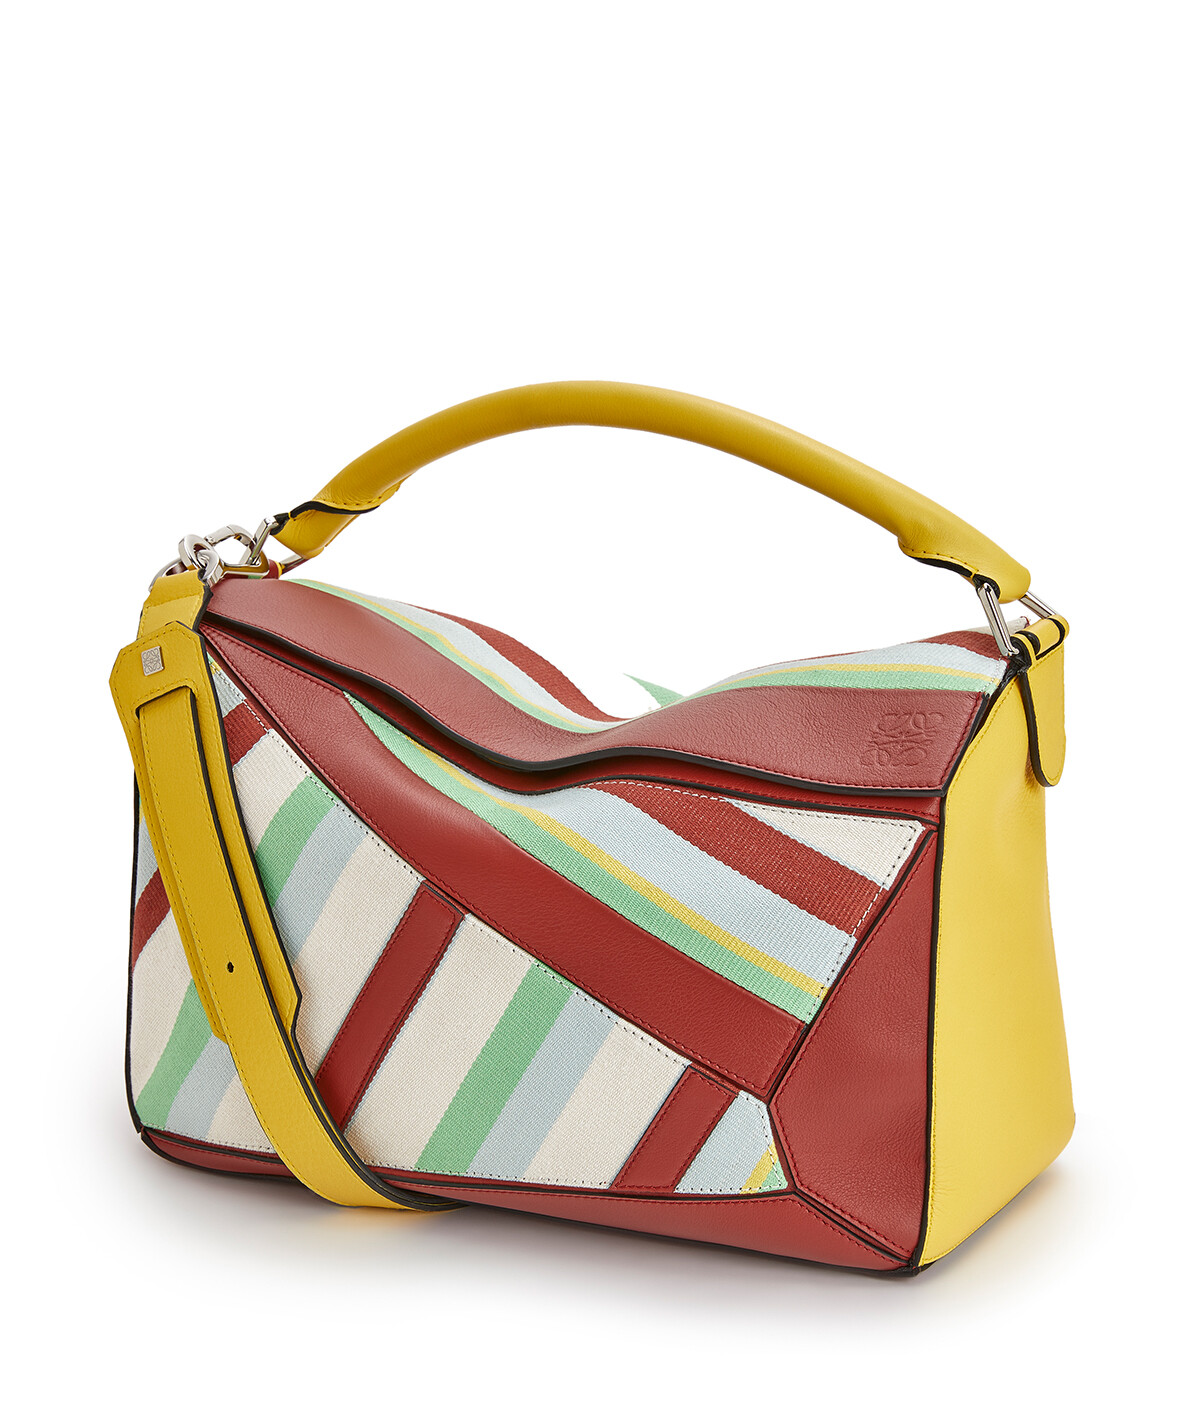 LOEWE 大号条纹Puzzle手袋 Yellow/Multicolour front